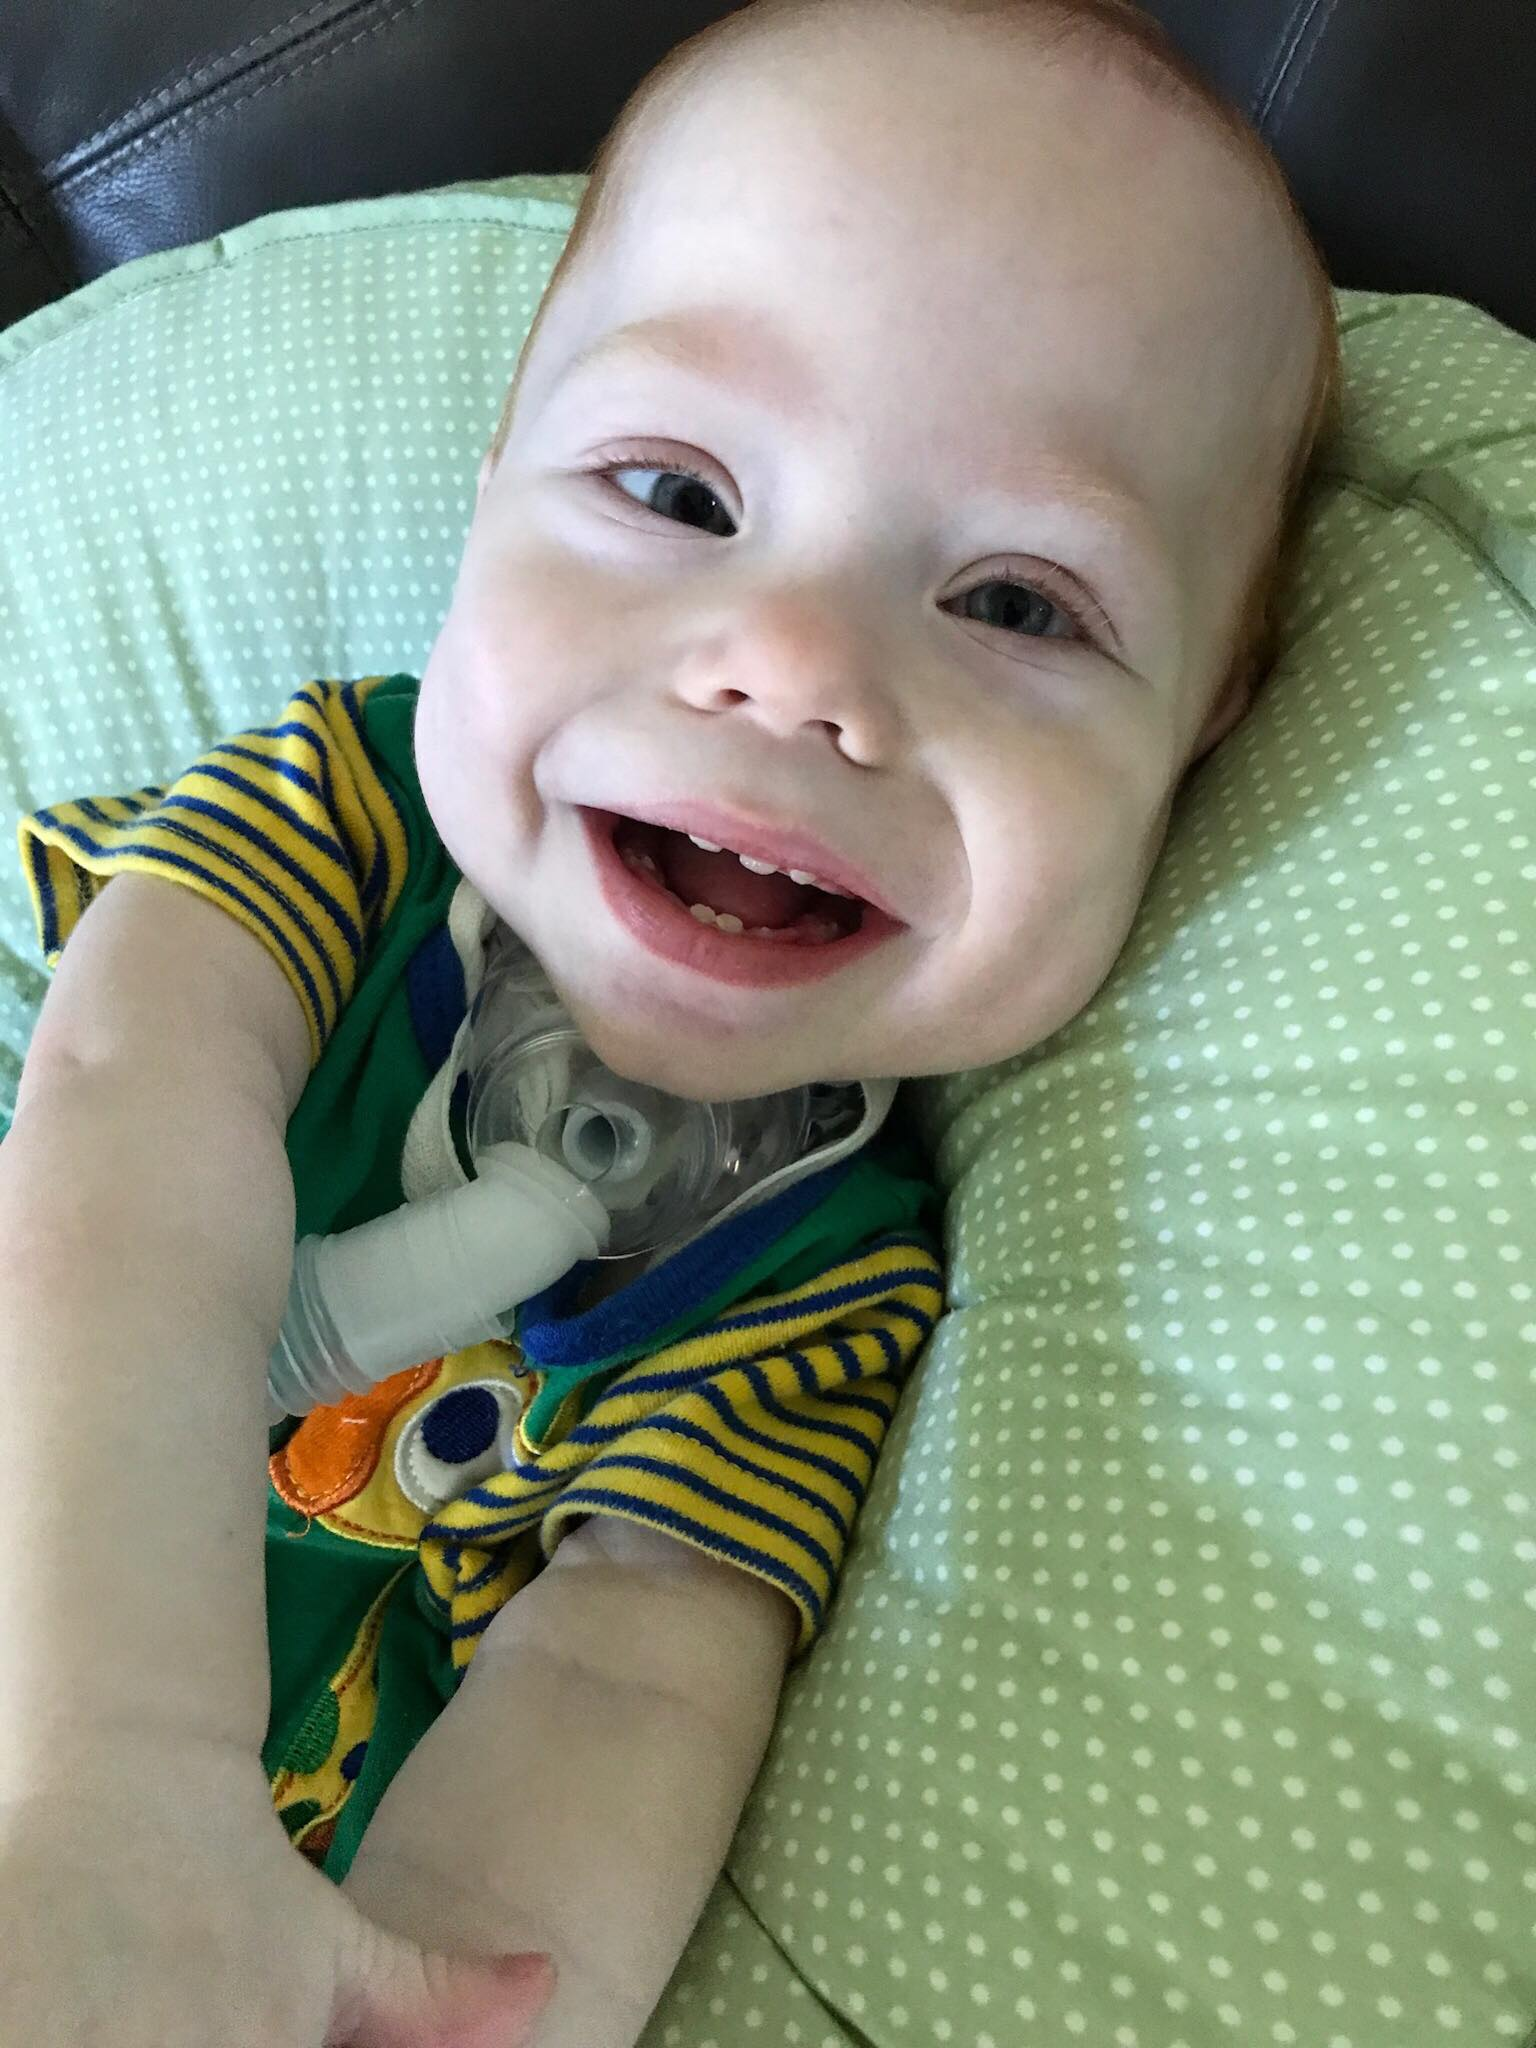 Mom Adopts Preemie of Heroin Addict with 30% Chance Survival